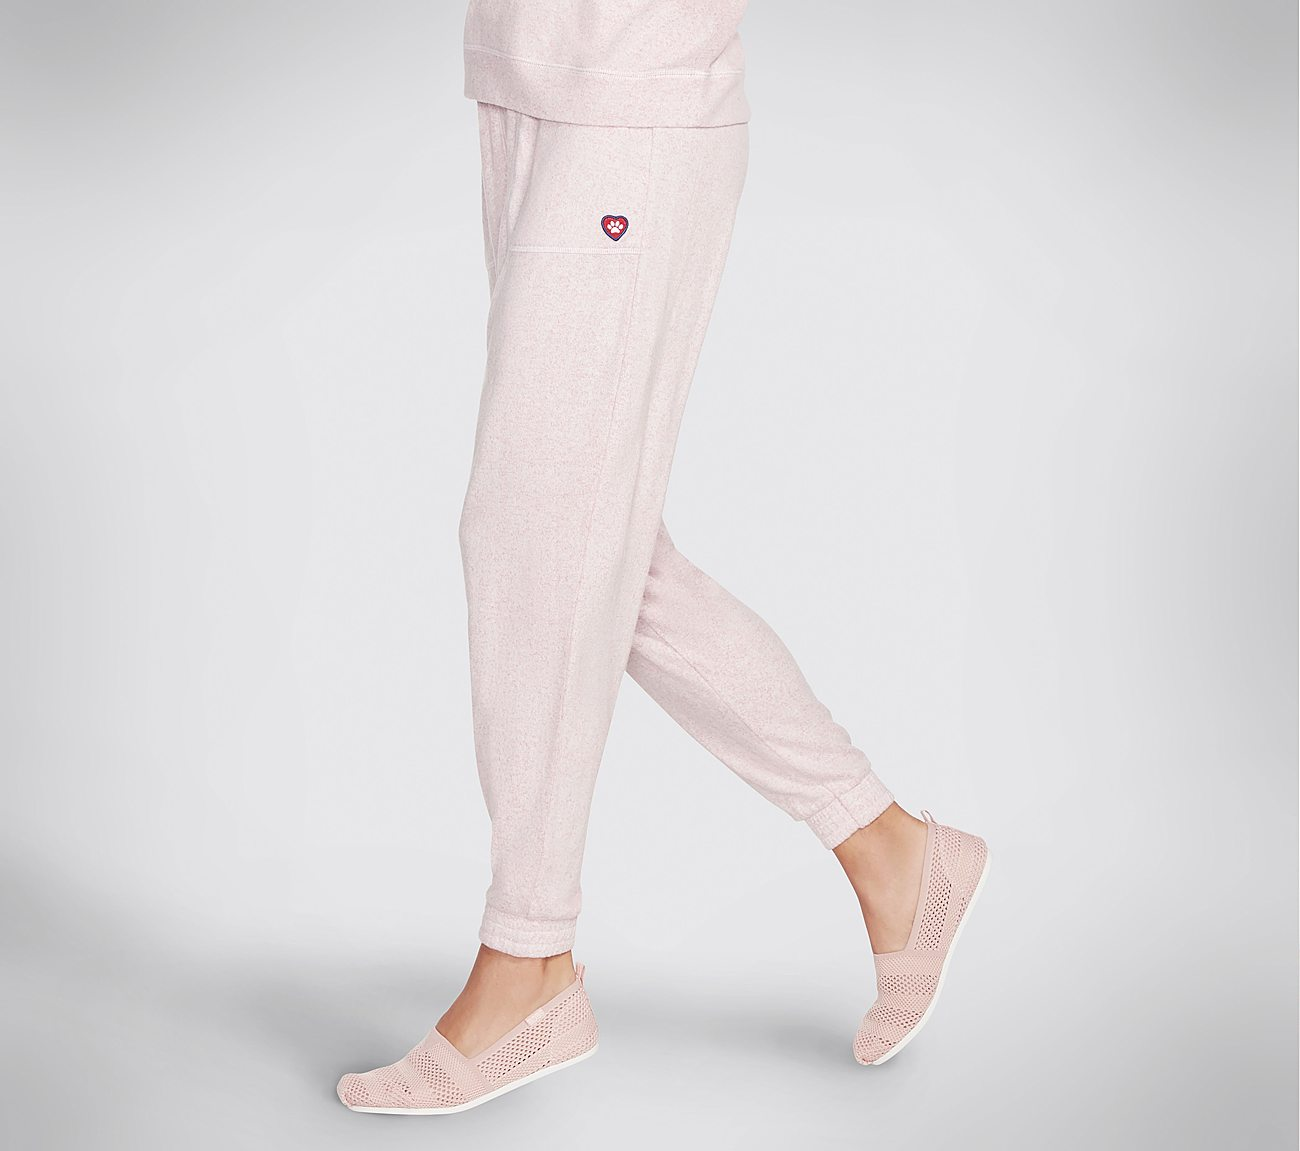 BOBS for Dogs Cozy Jogger Pant